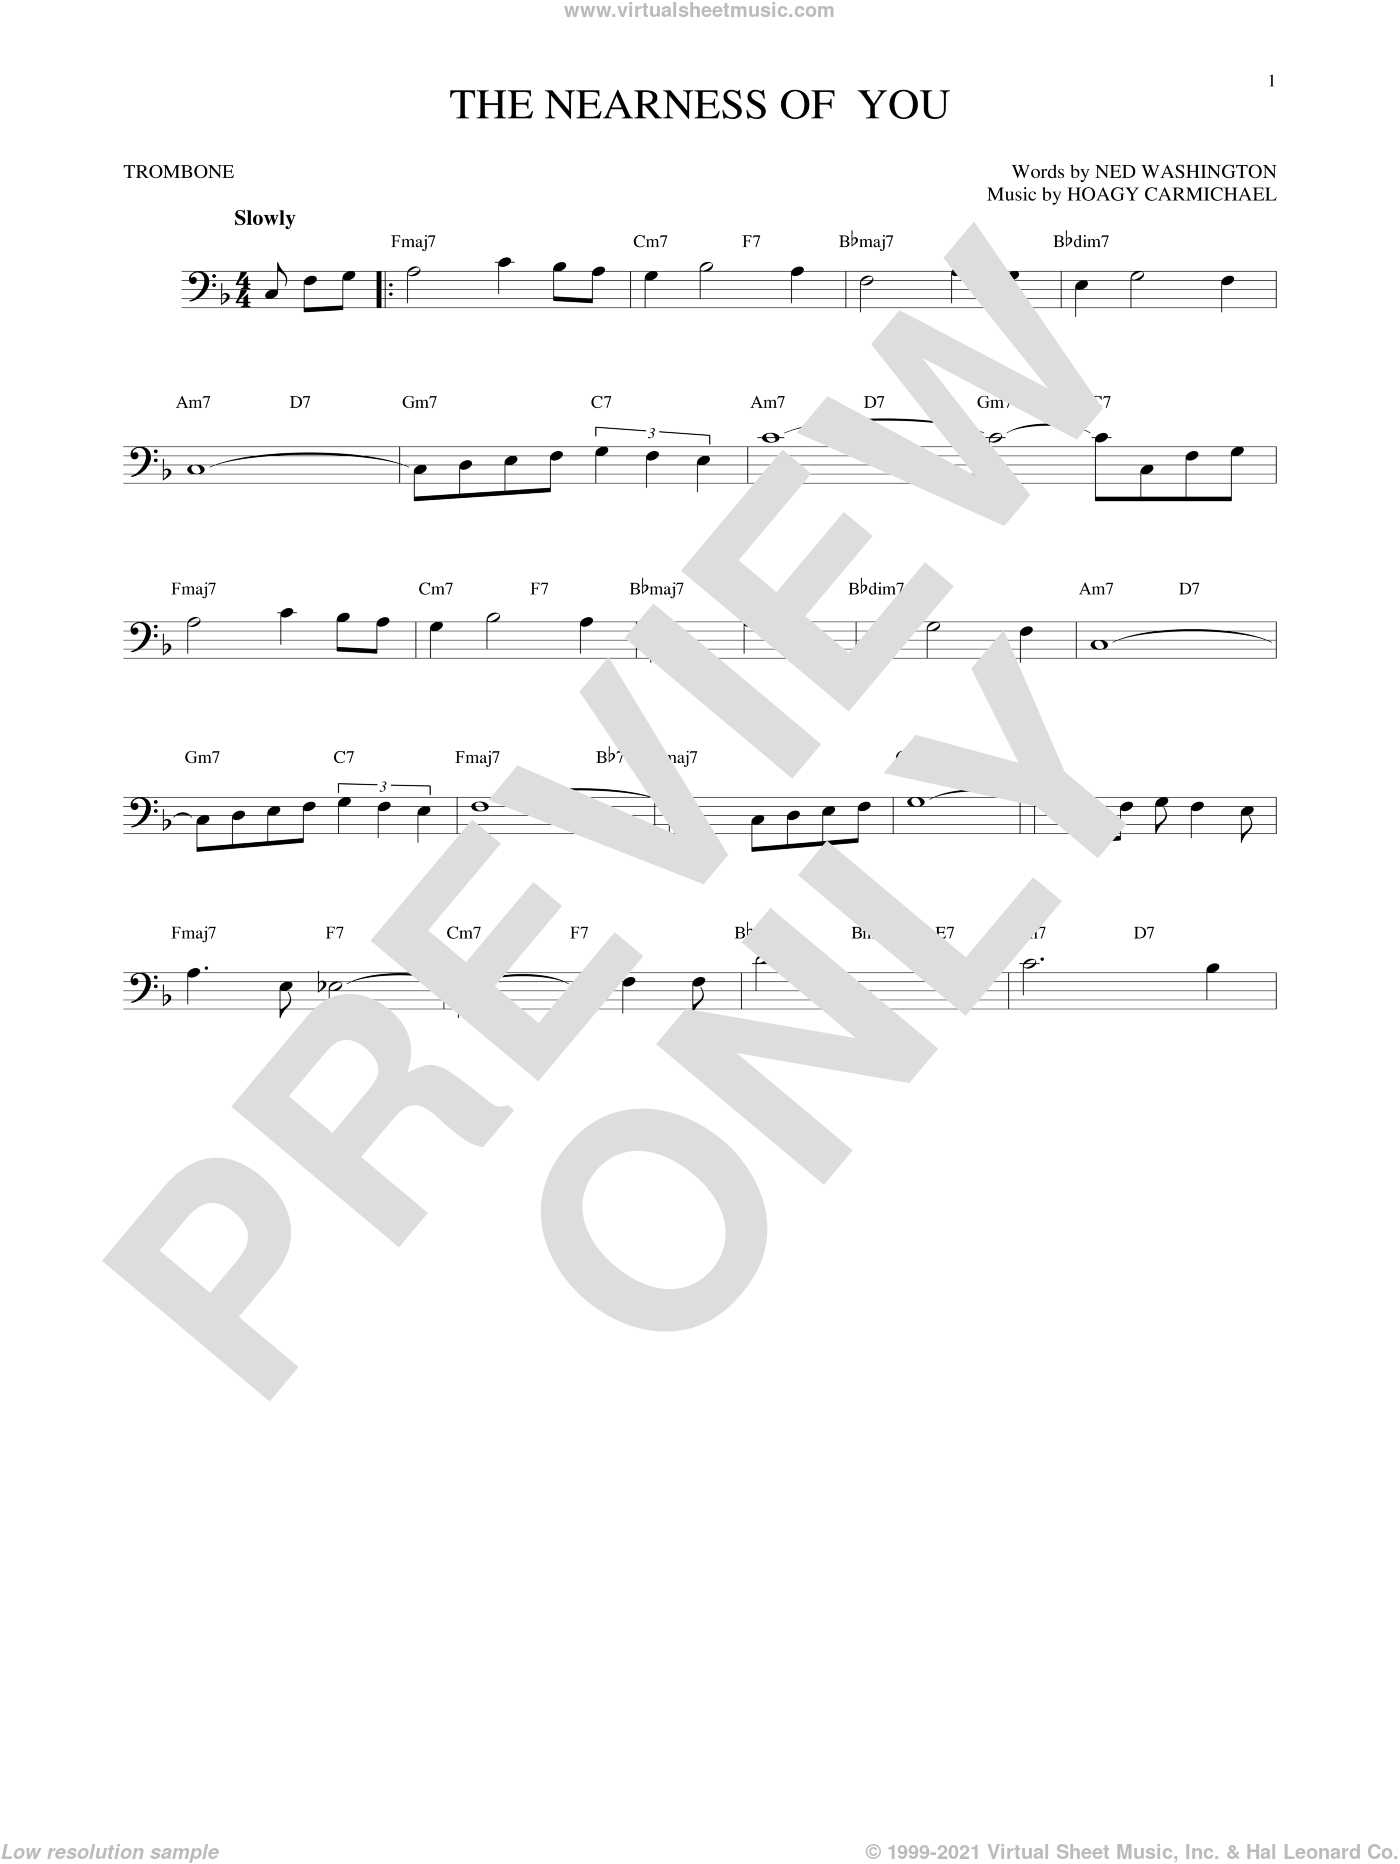 The Nearness Of You sheet music for trombone solo by Ned Washington, George Shearing and Hoagy Carmichael. Score Image Preview.